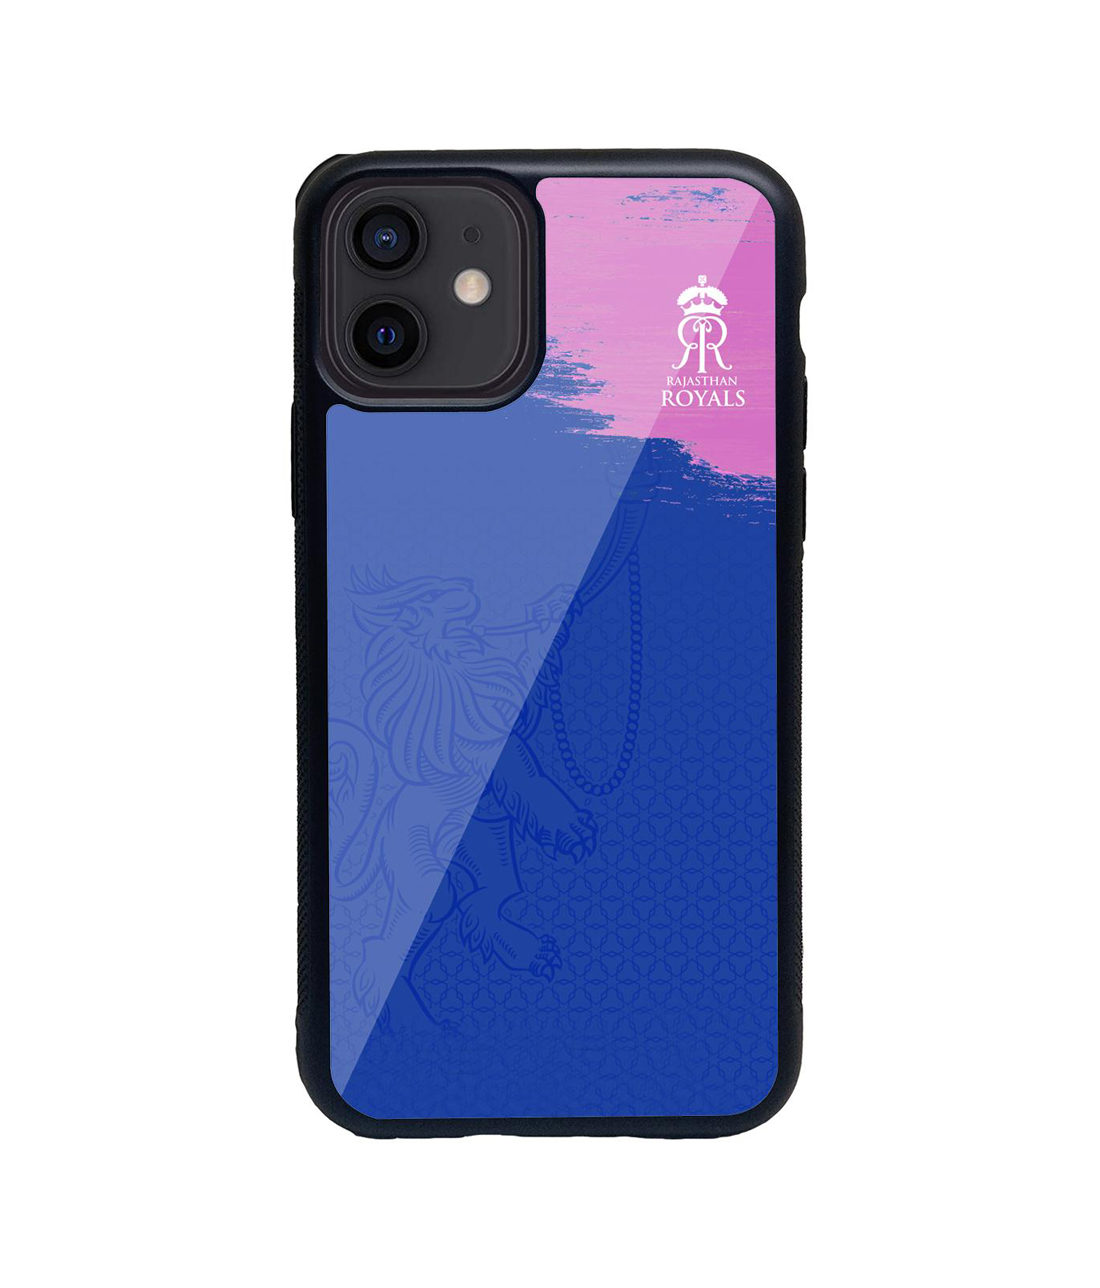 Rajasthan Royals Crest Blue - Glass Case for iPhone 12